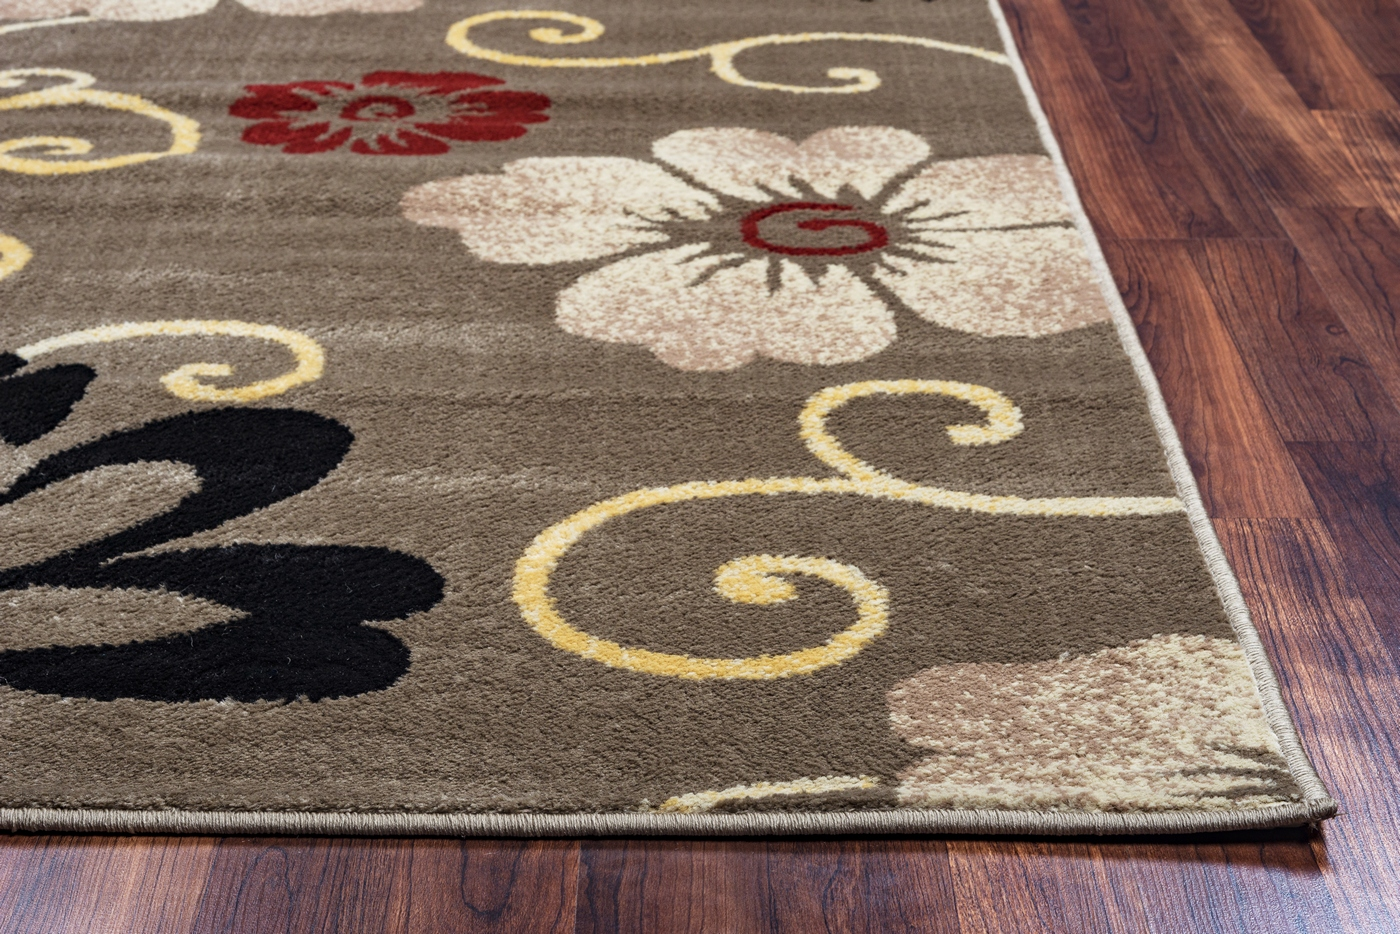 Bay Side Simple Floral Area Rug In Grey Ivory Black Red 7